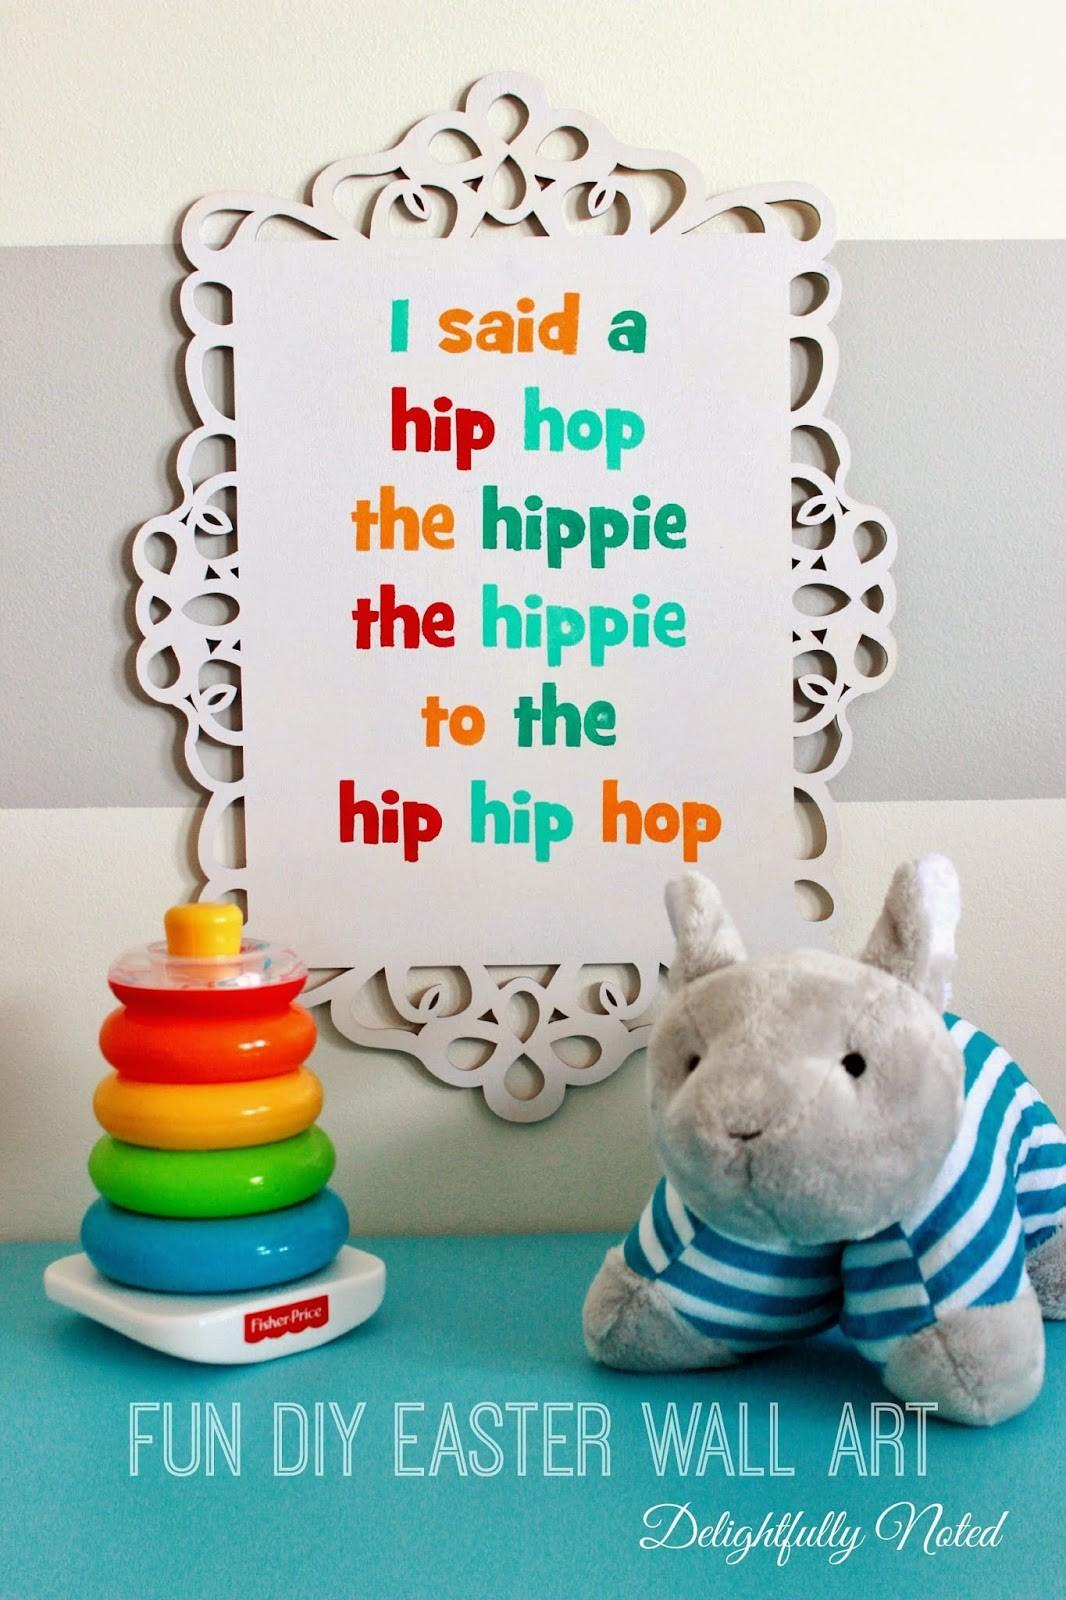 Rapper Delight Diy Easter Wall Art Delightfully Noted